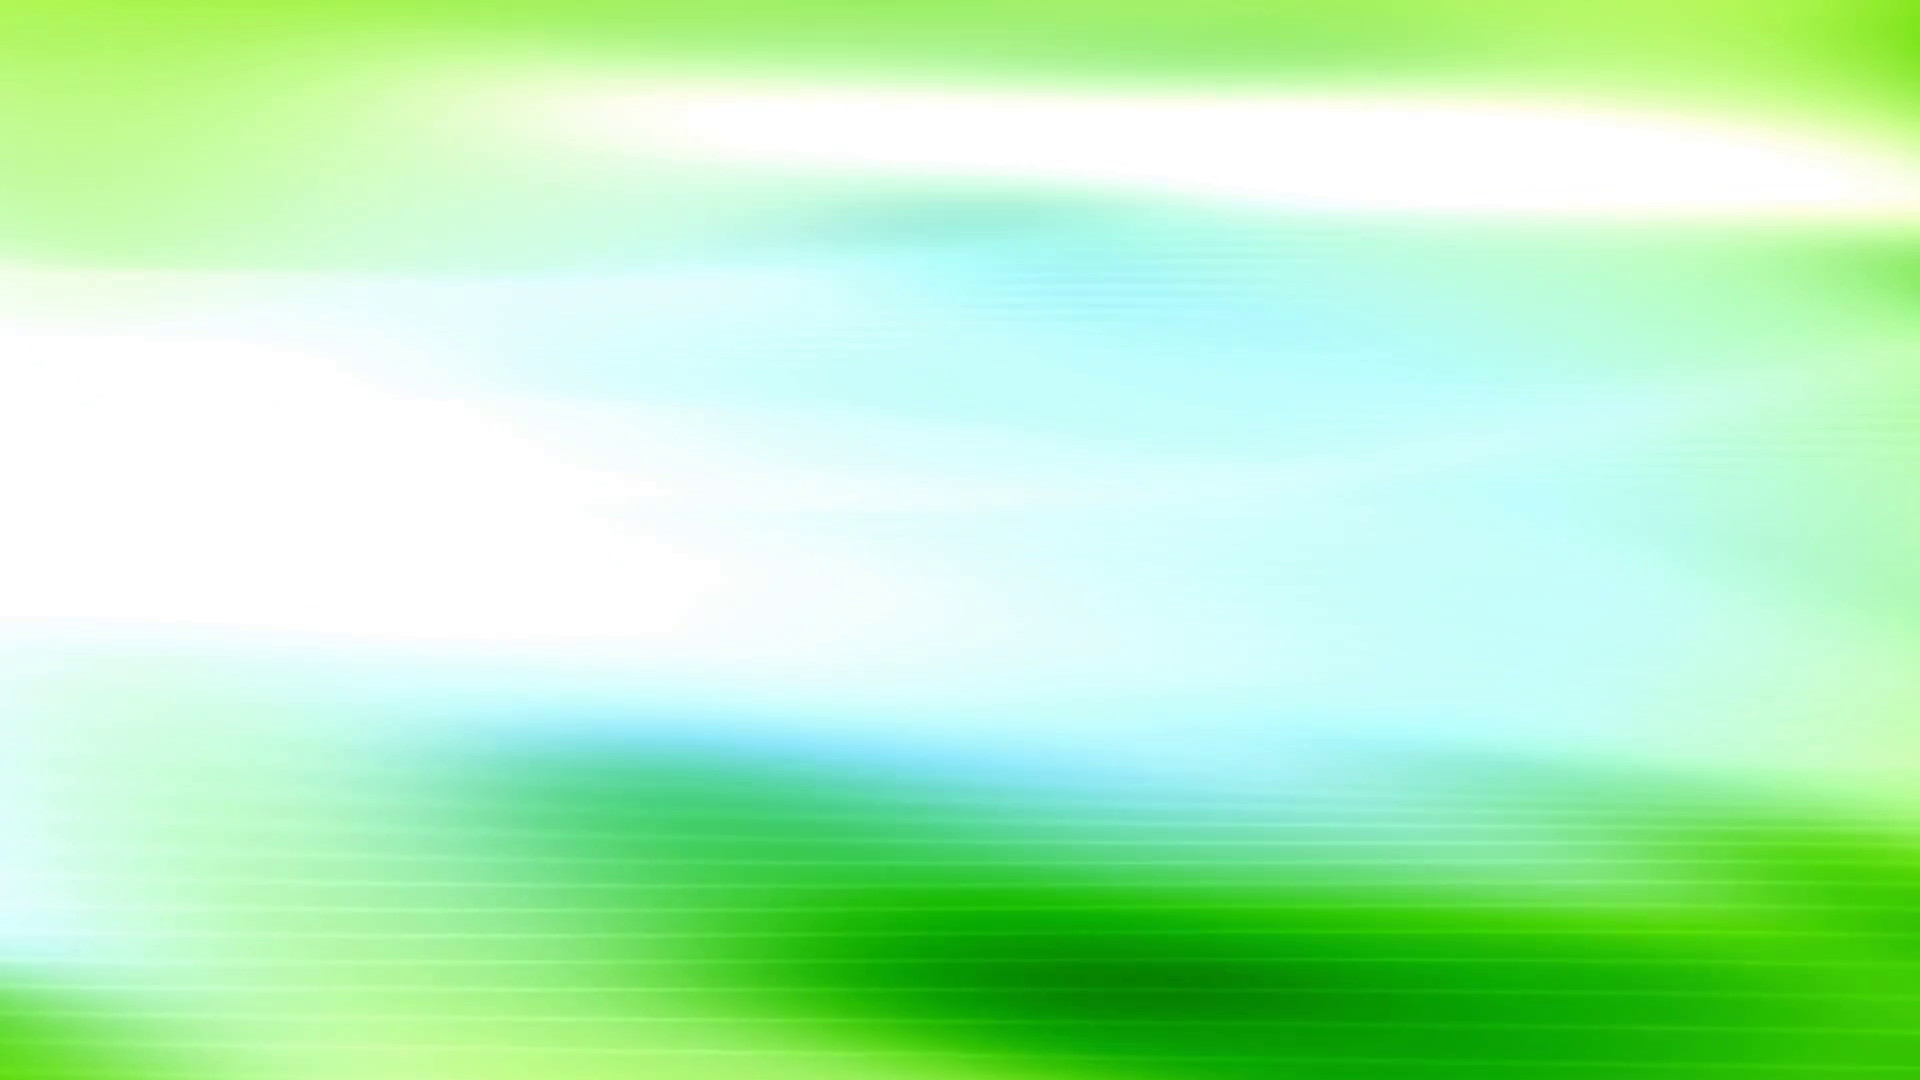 Backgrounds Green (51+ images)